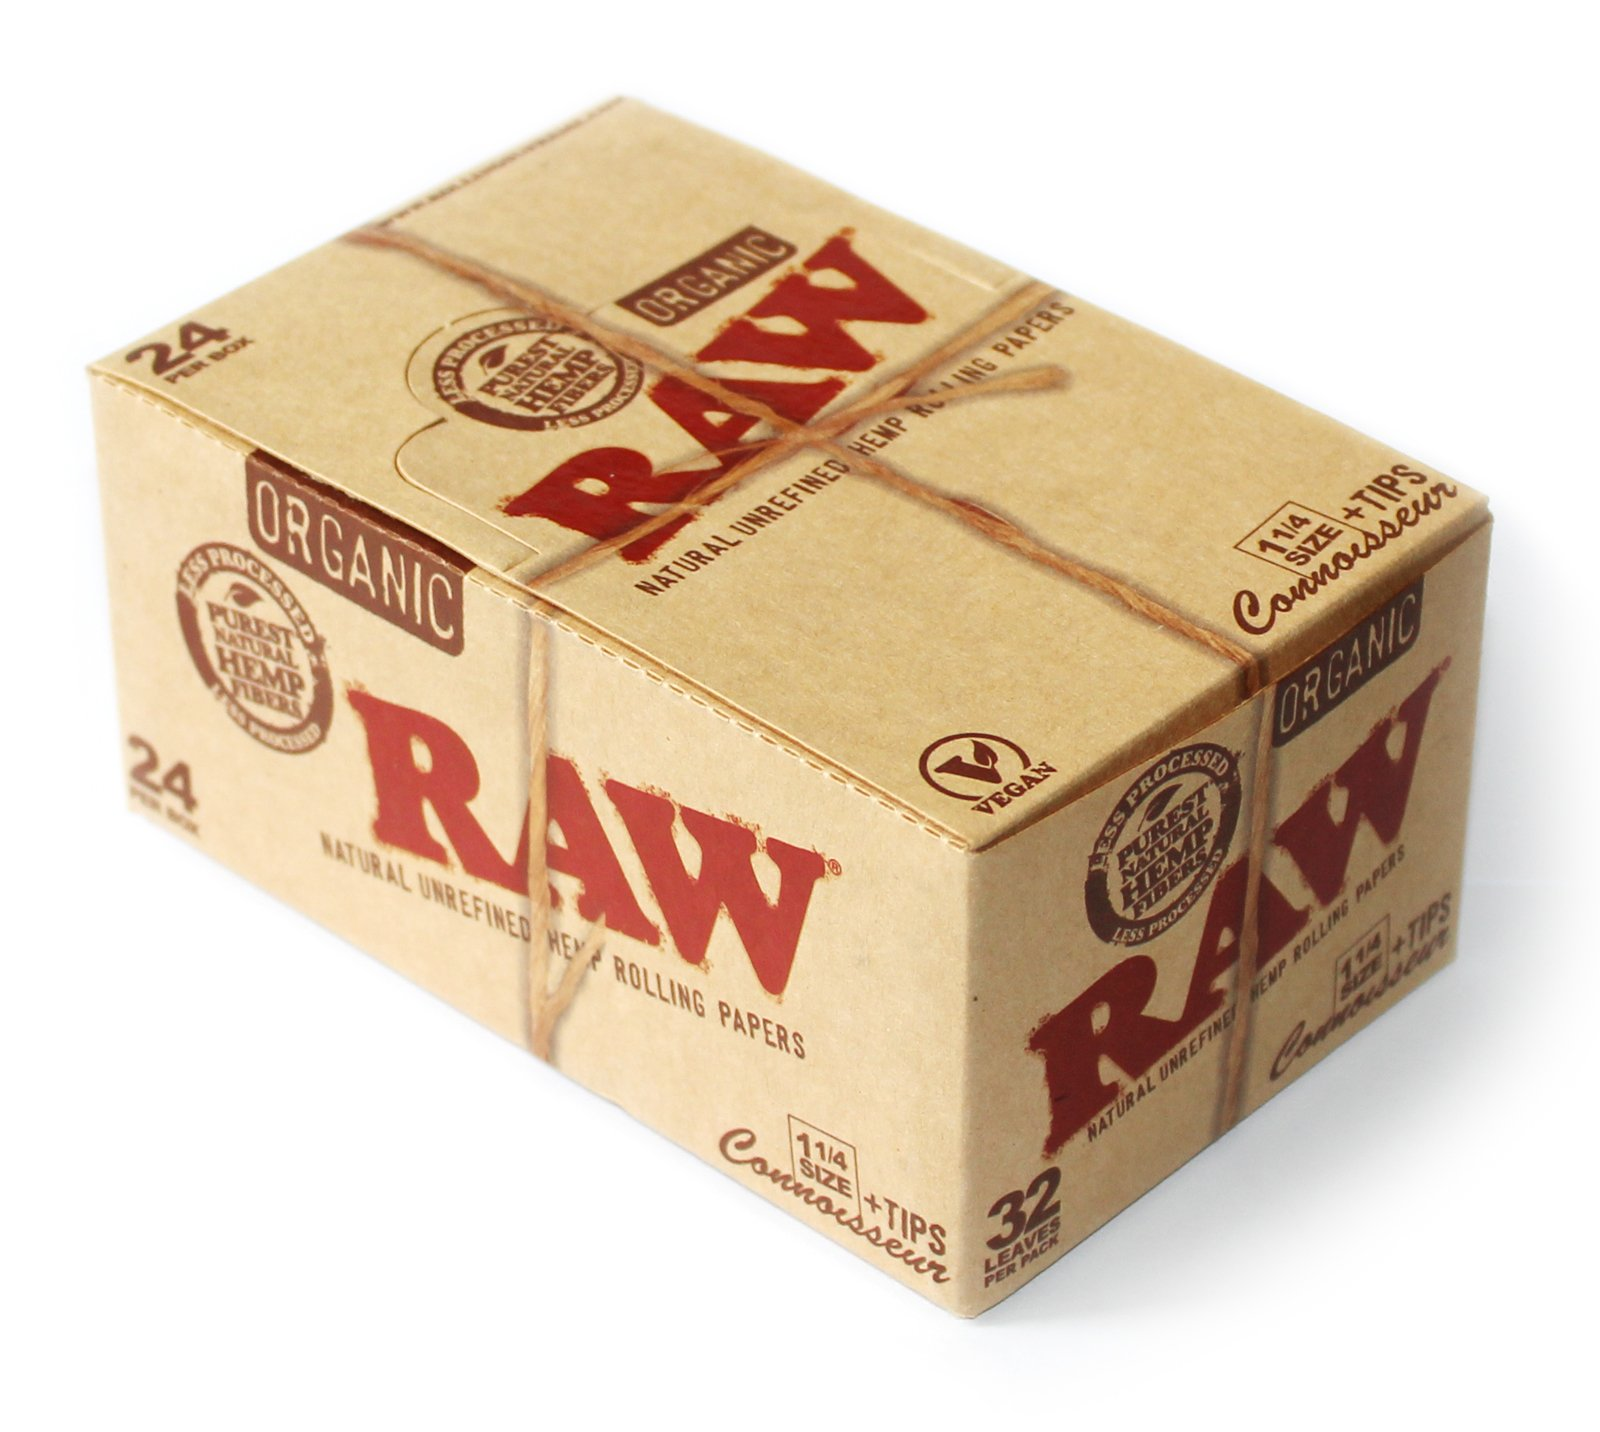 Raw Organic Connoisseur 1.25 1 1/4 Rolling Paper with Tips Full Box of 24 Packs by RAW